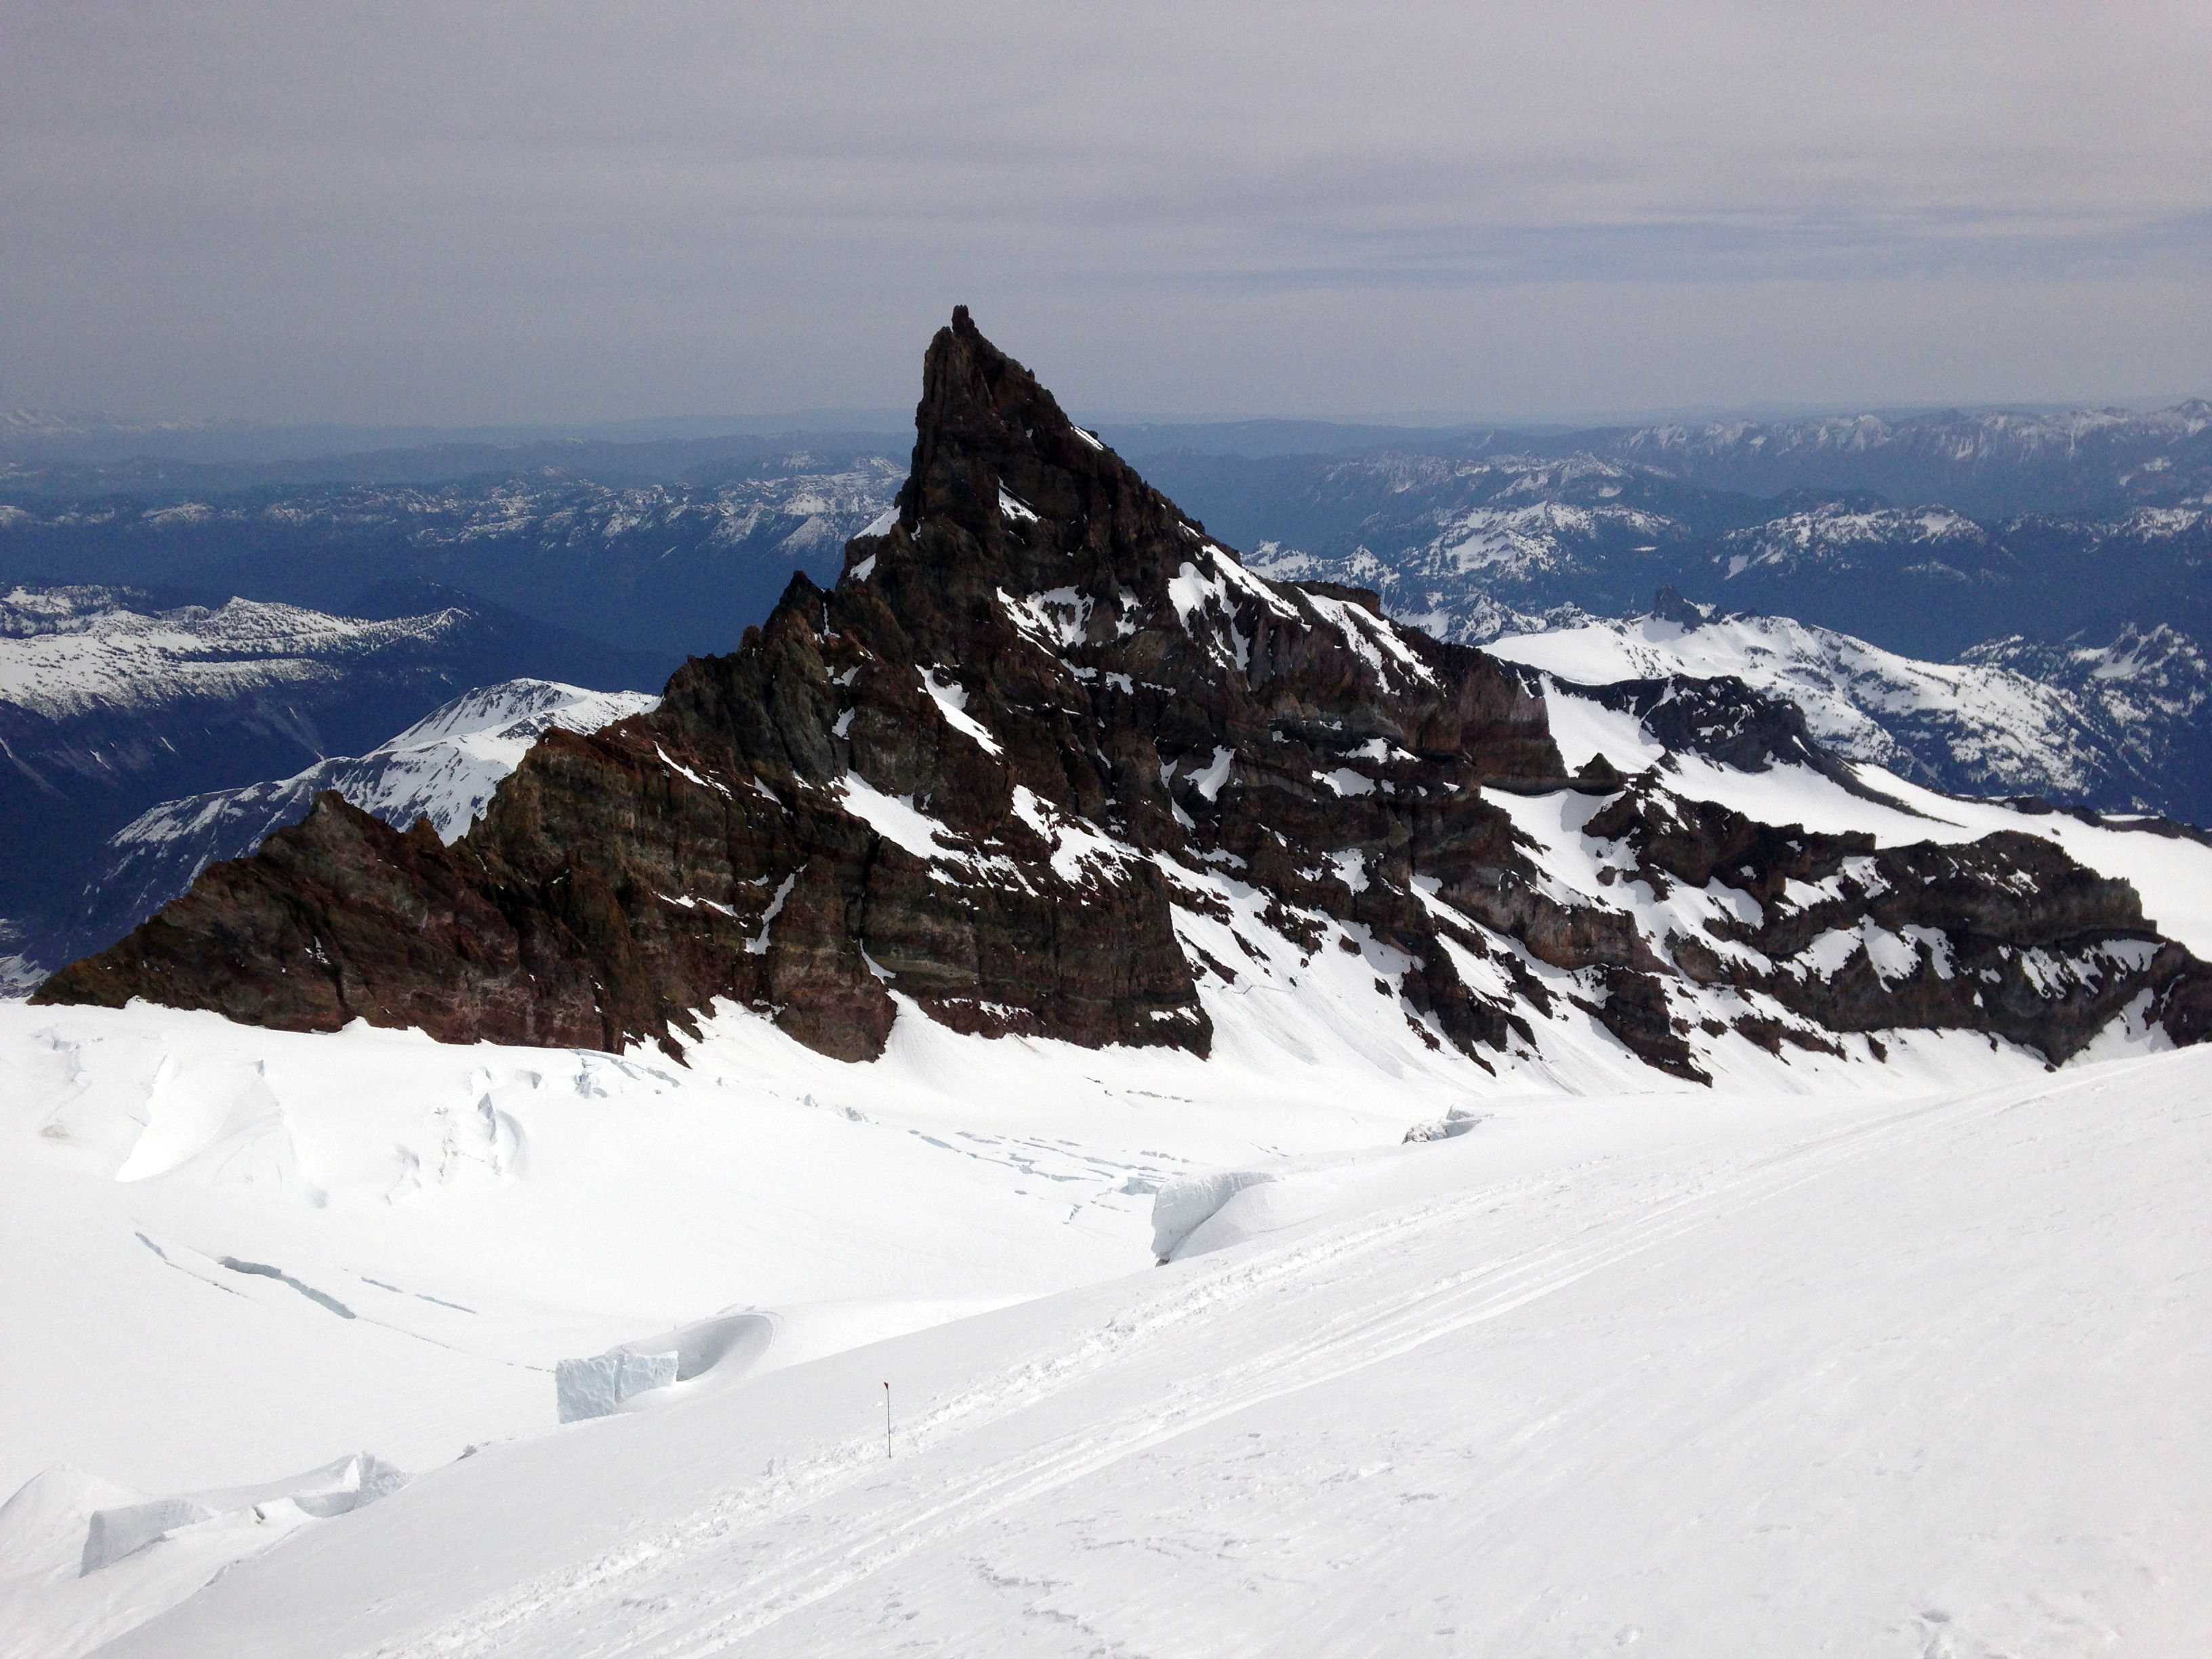 Skiing down past Little Tahoma above the Ingraham Glacier.